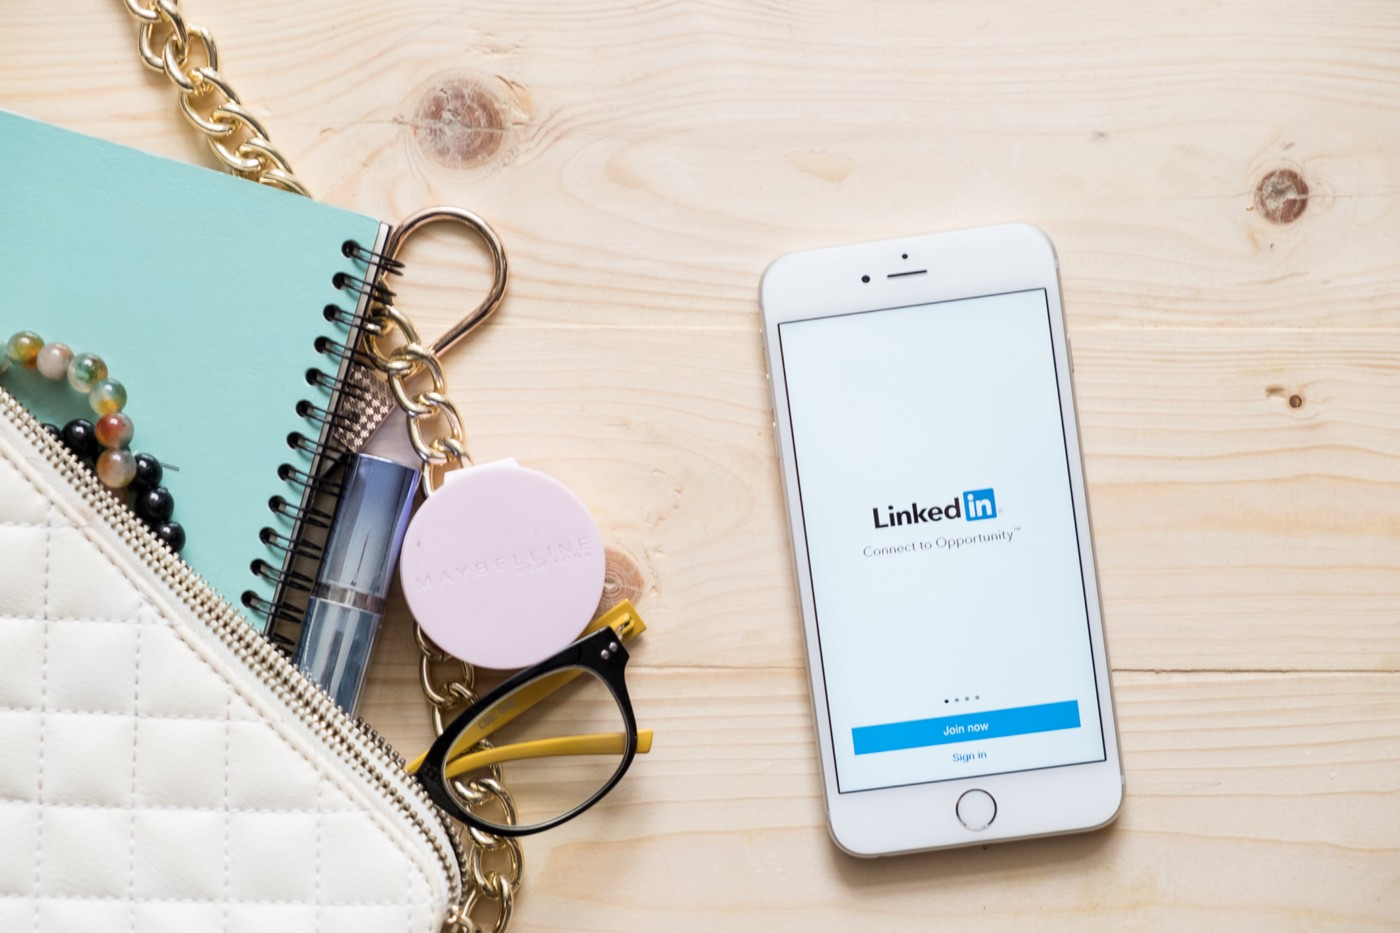 Cellphone with LinkedIn logo on it